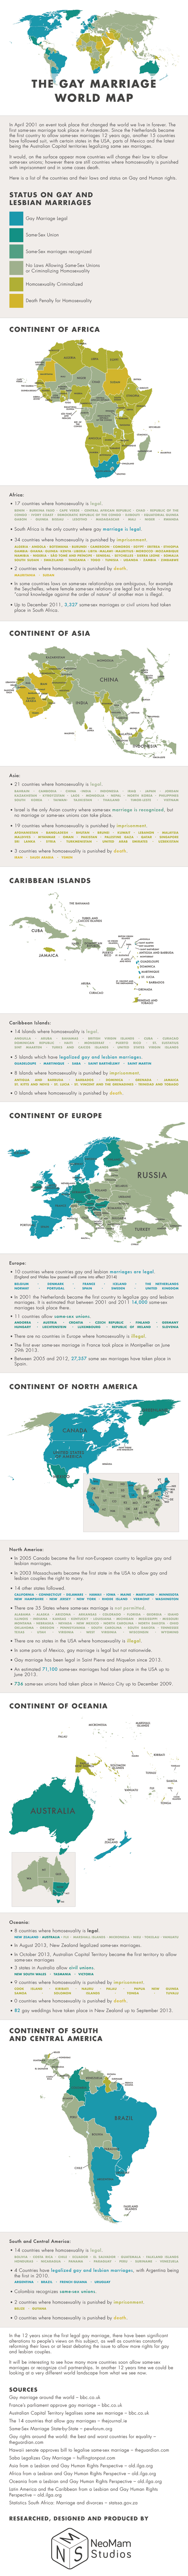 infographic,world,mariage